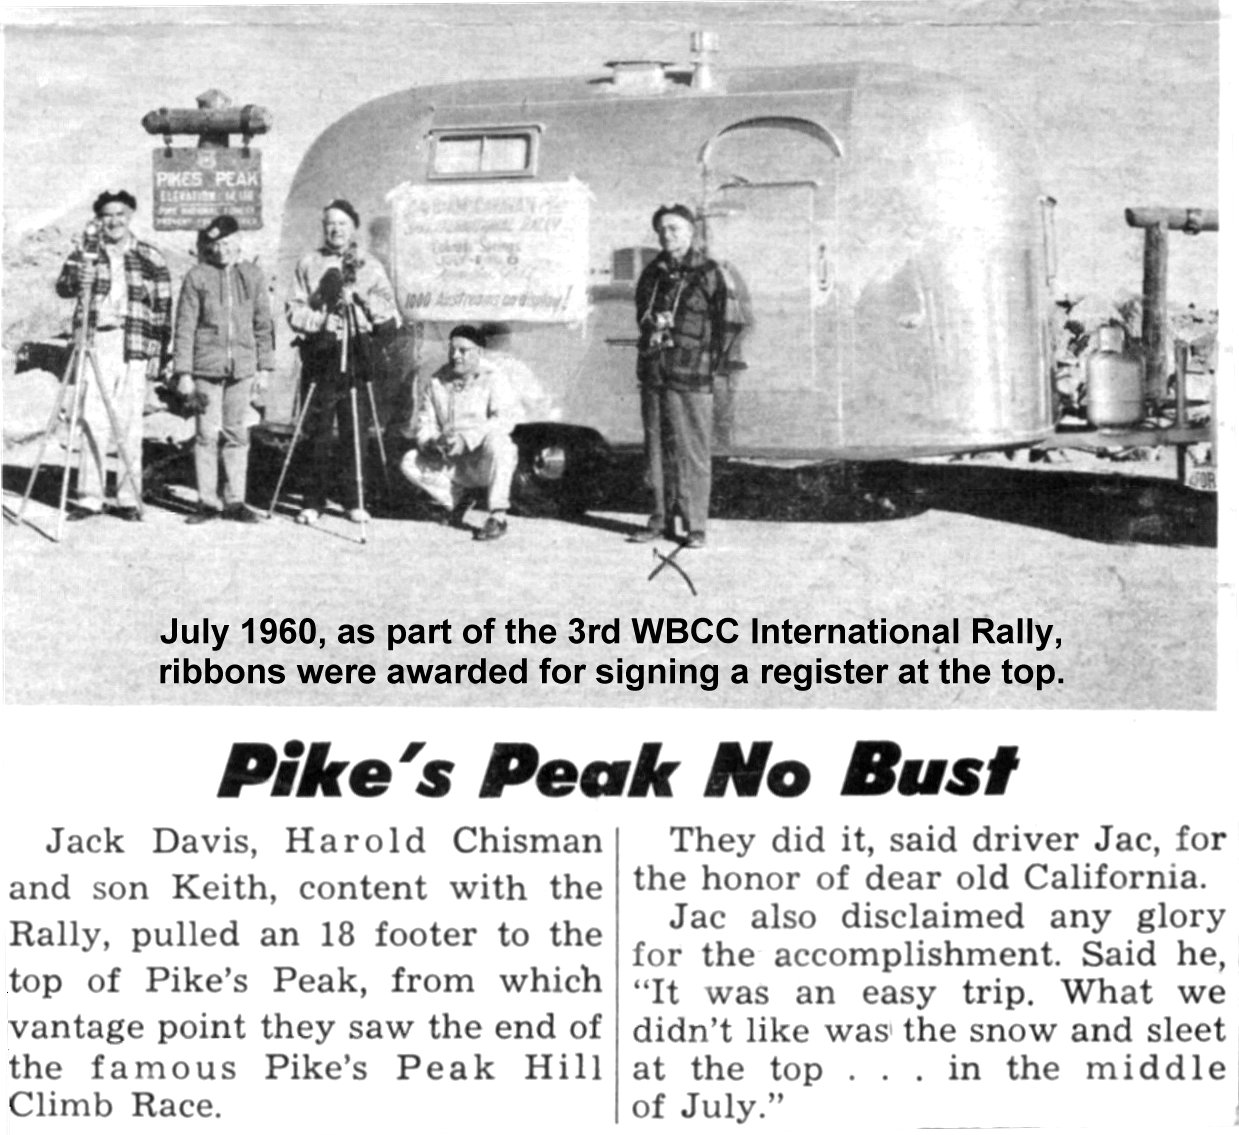 Click image for larger version  Name:196007 Pike's Peak No Bust, with notation.jpg Views:93 Size:237.3 KB ID:179941